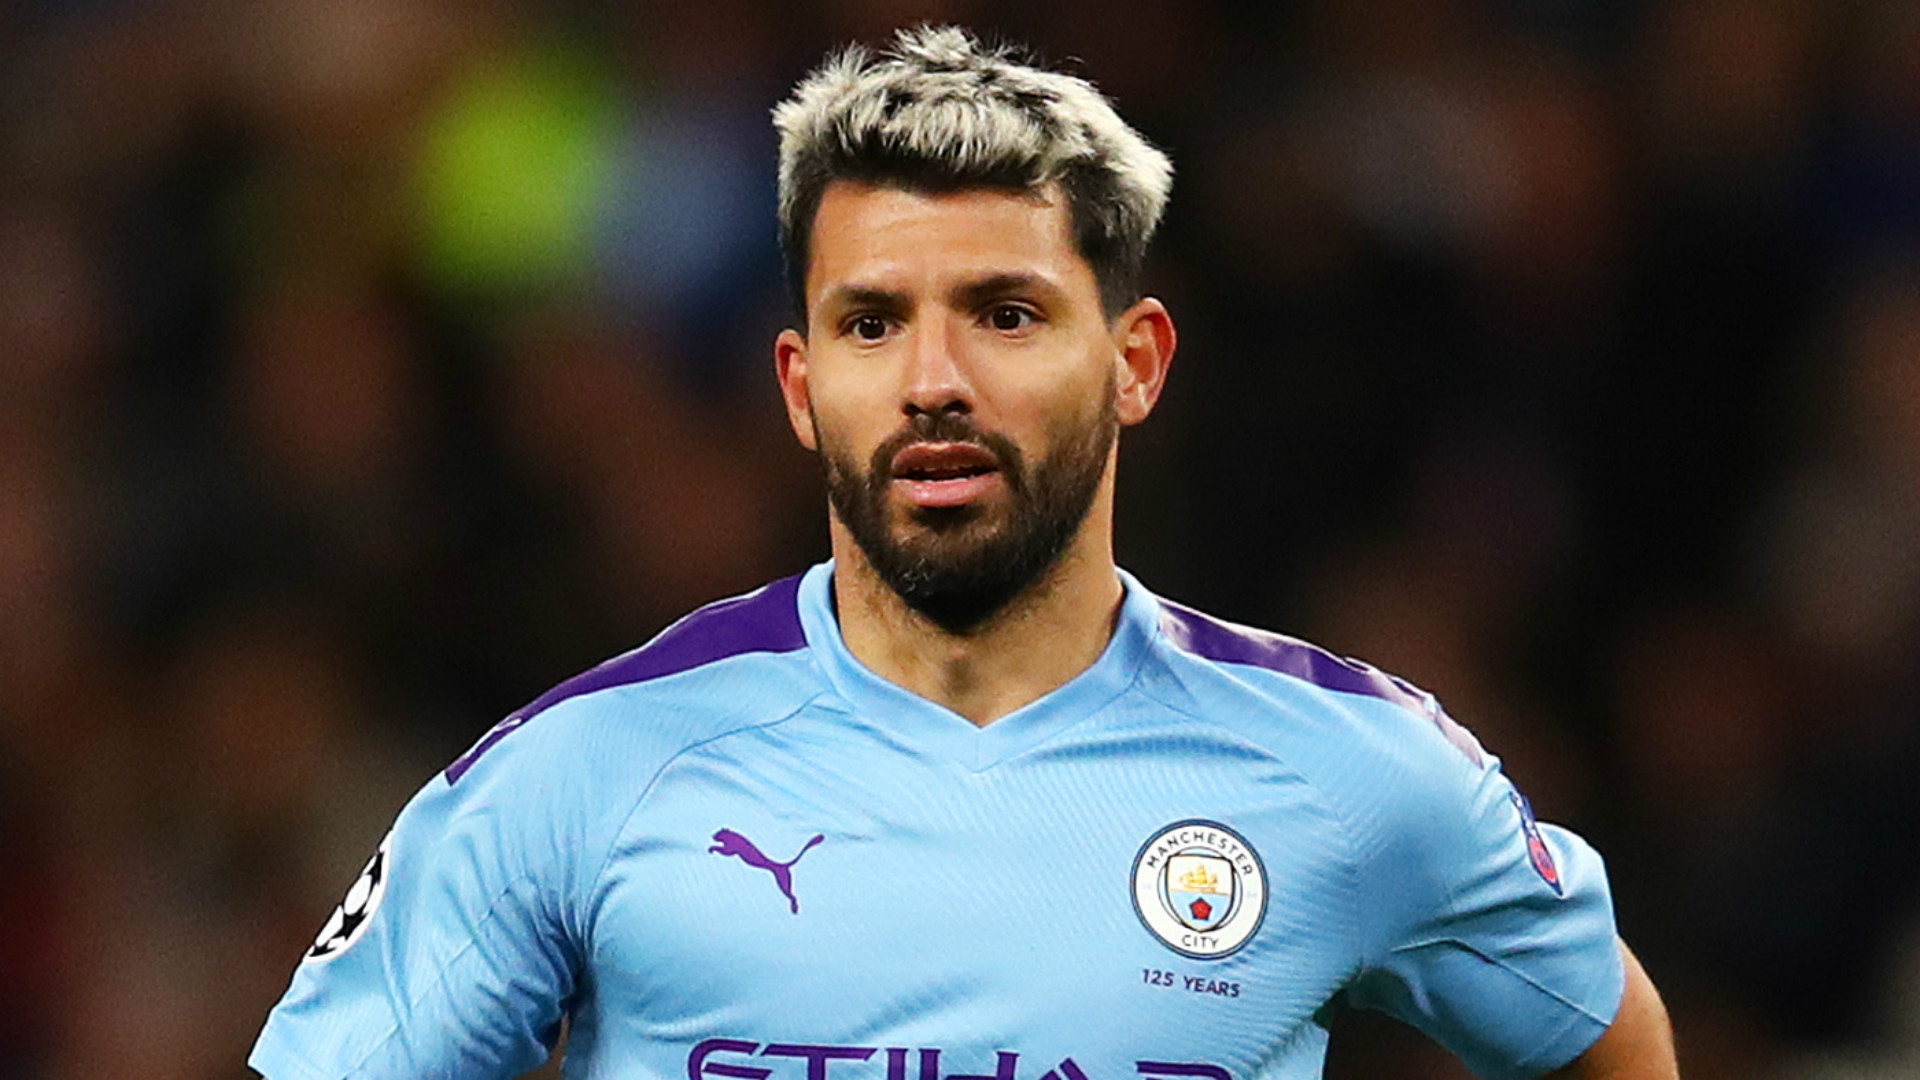 Sergio Aguero: Manchester City striker in vehicle crash on way to training